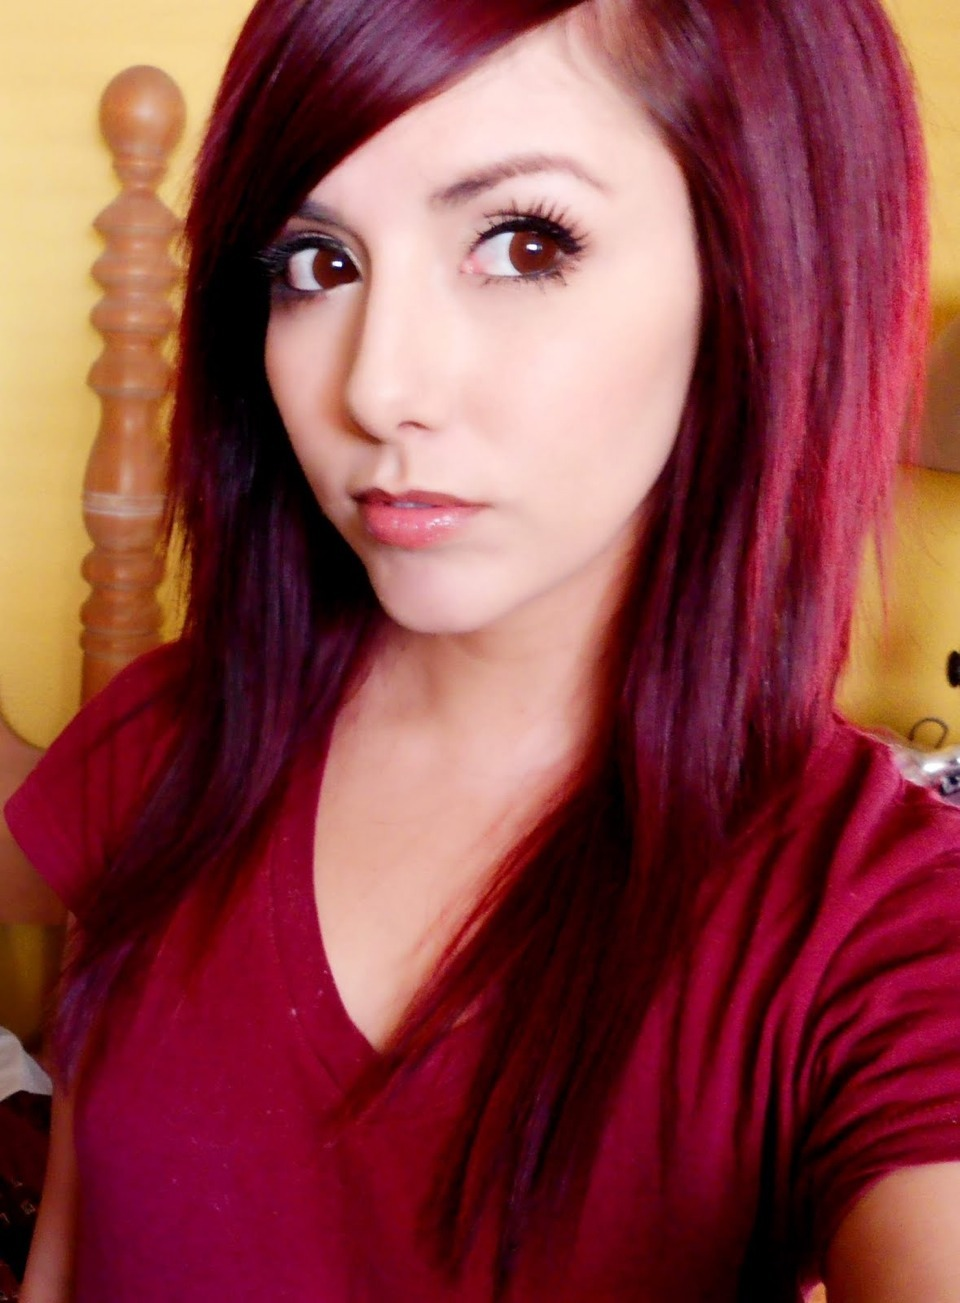 Want Deep Dark Red Hair Add Red Food Coloring To The Dye About